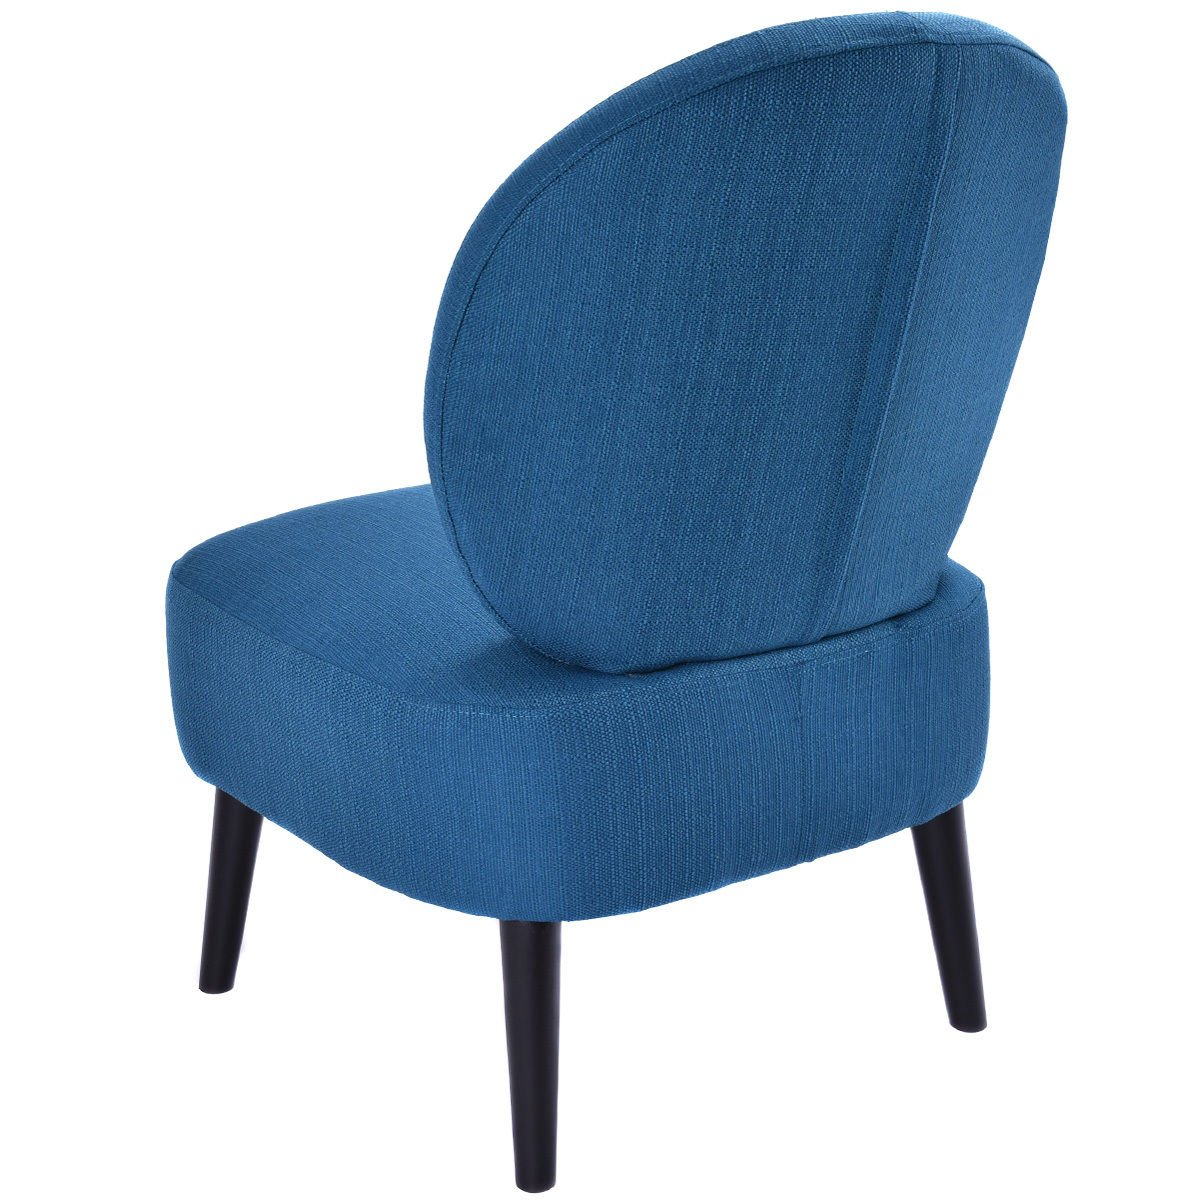 Brilliant Giantex Armless Accent Chair Round Back Dining Chair Home Living Room Furniture Blue Gmtry Best Dining Table And Chair Ideas Images Gmtryco